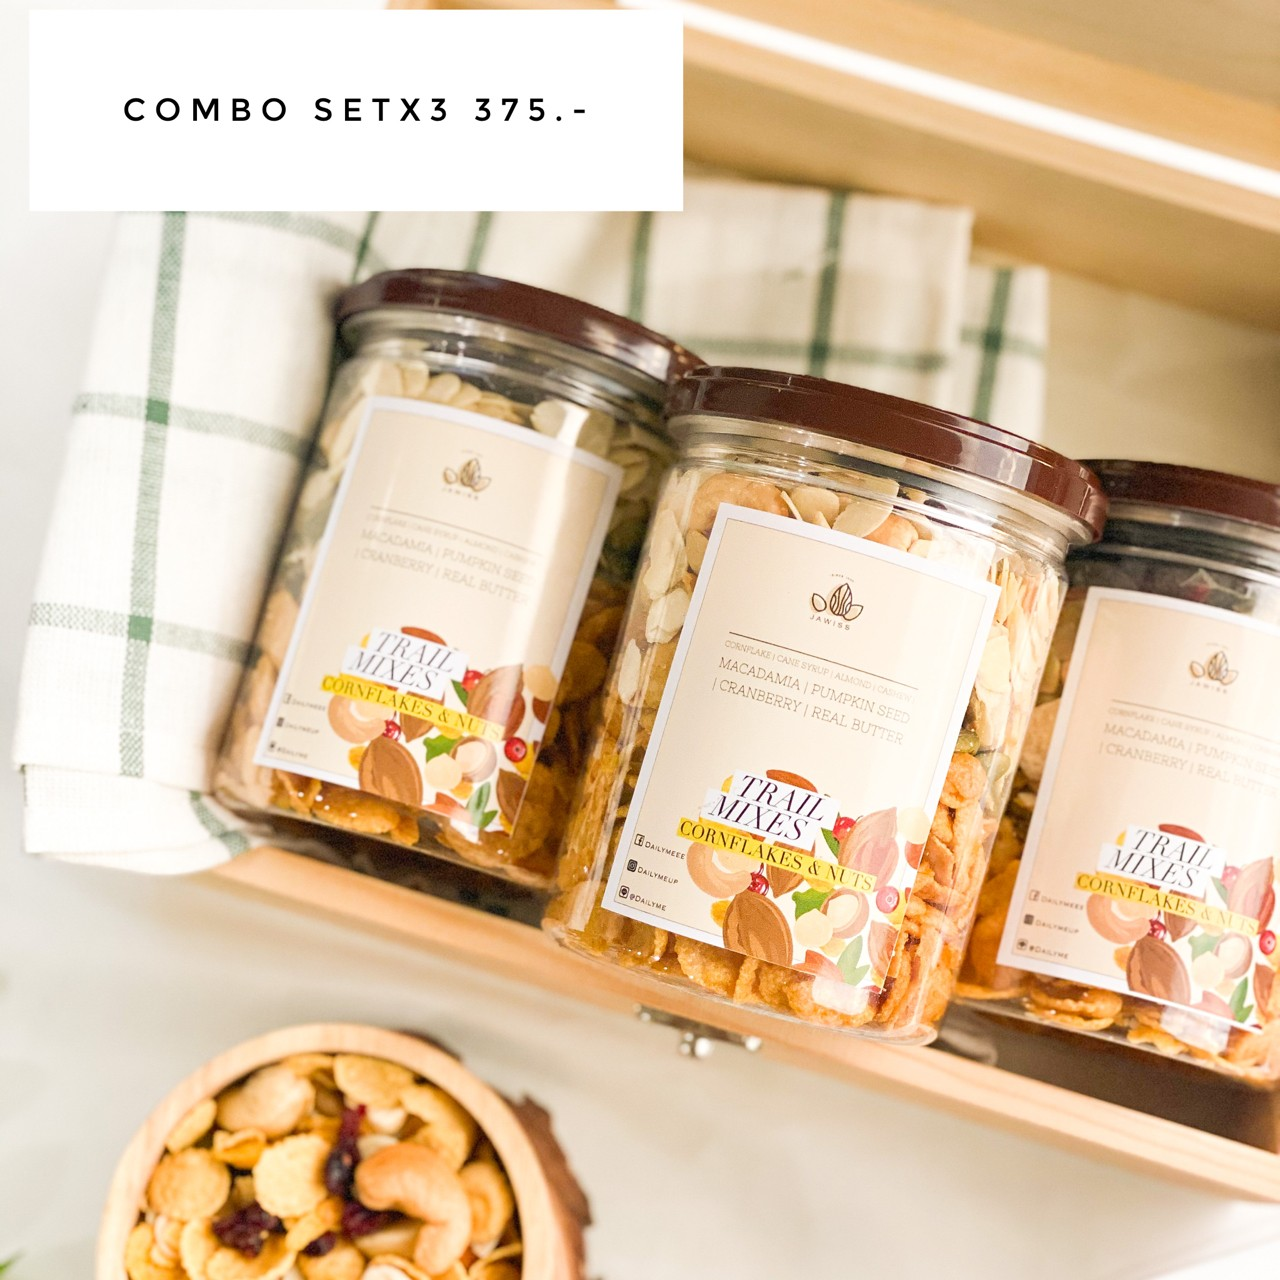 Combo Set Jawiss Cornflakes&Nuts